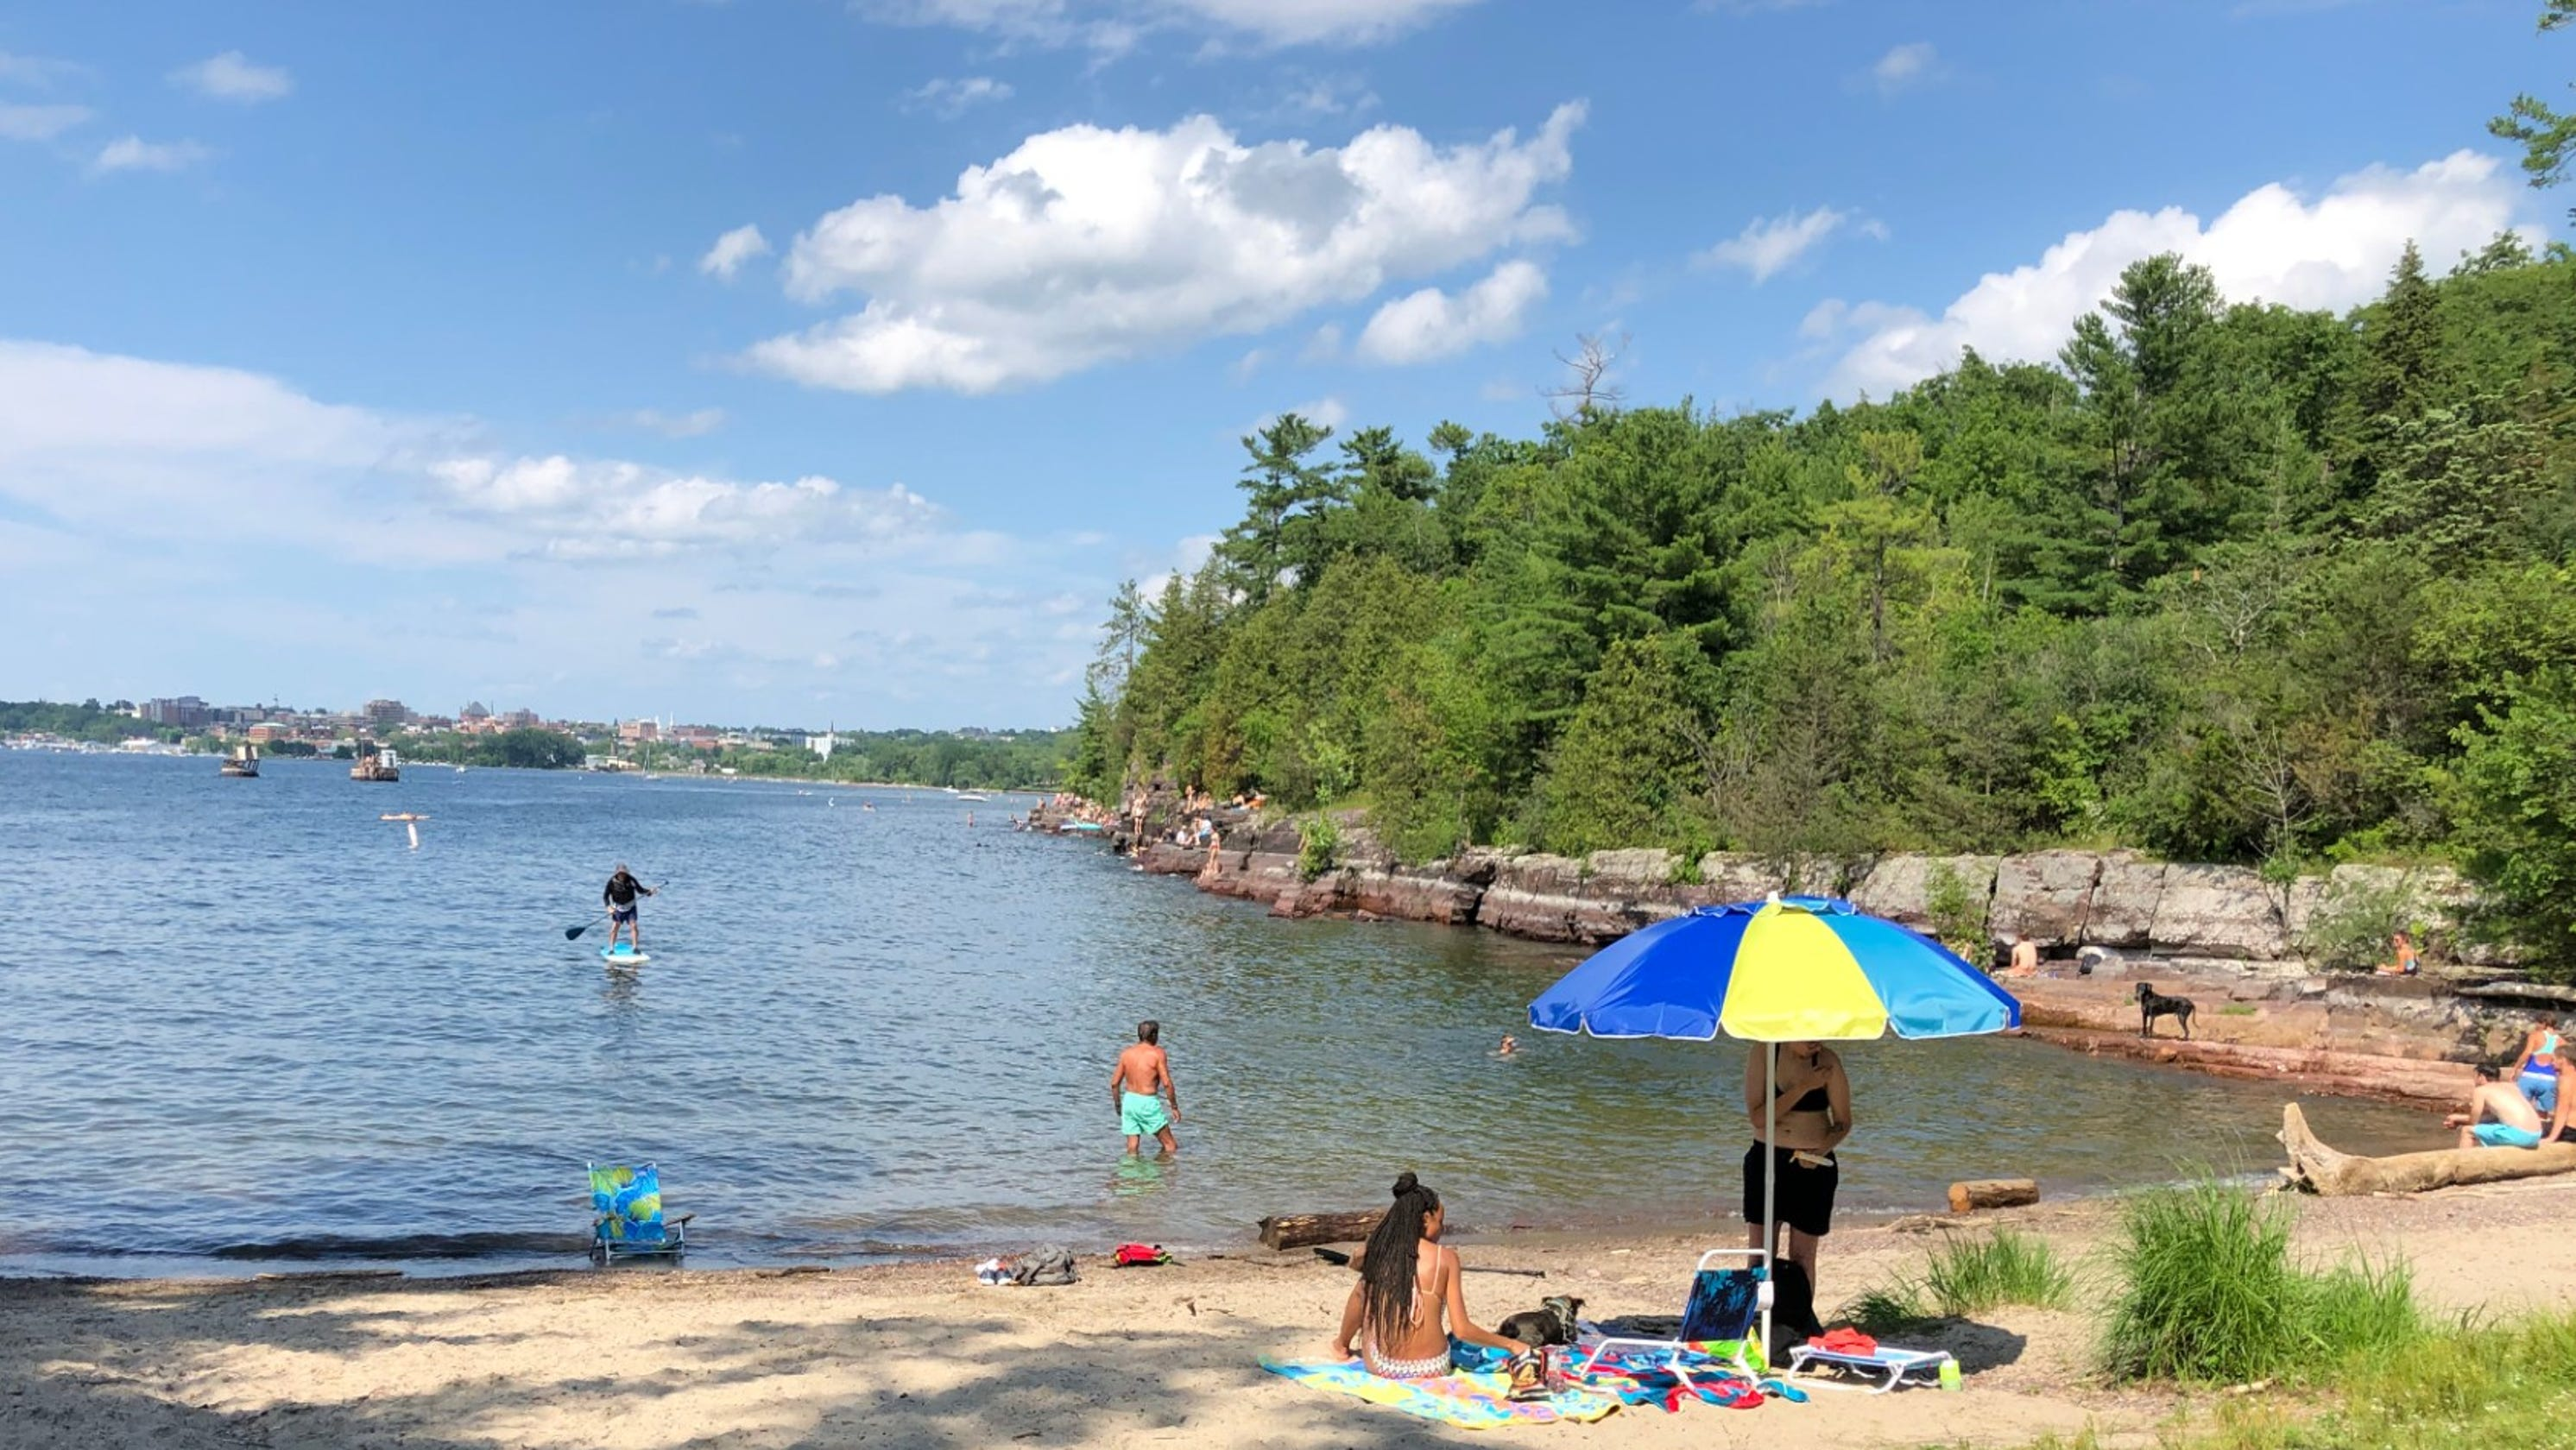 fa4086bd9c49 Relax, you're at the lake! But if you head to the ocean, here's how to stay  safe